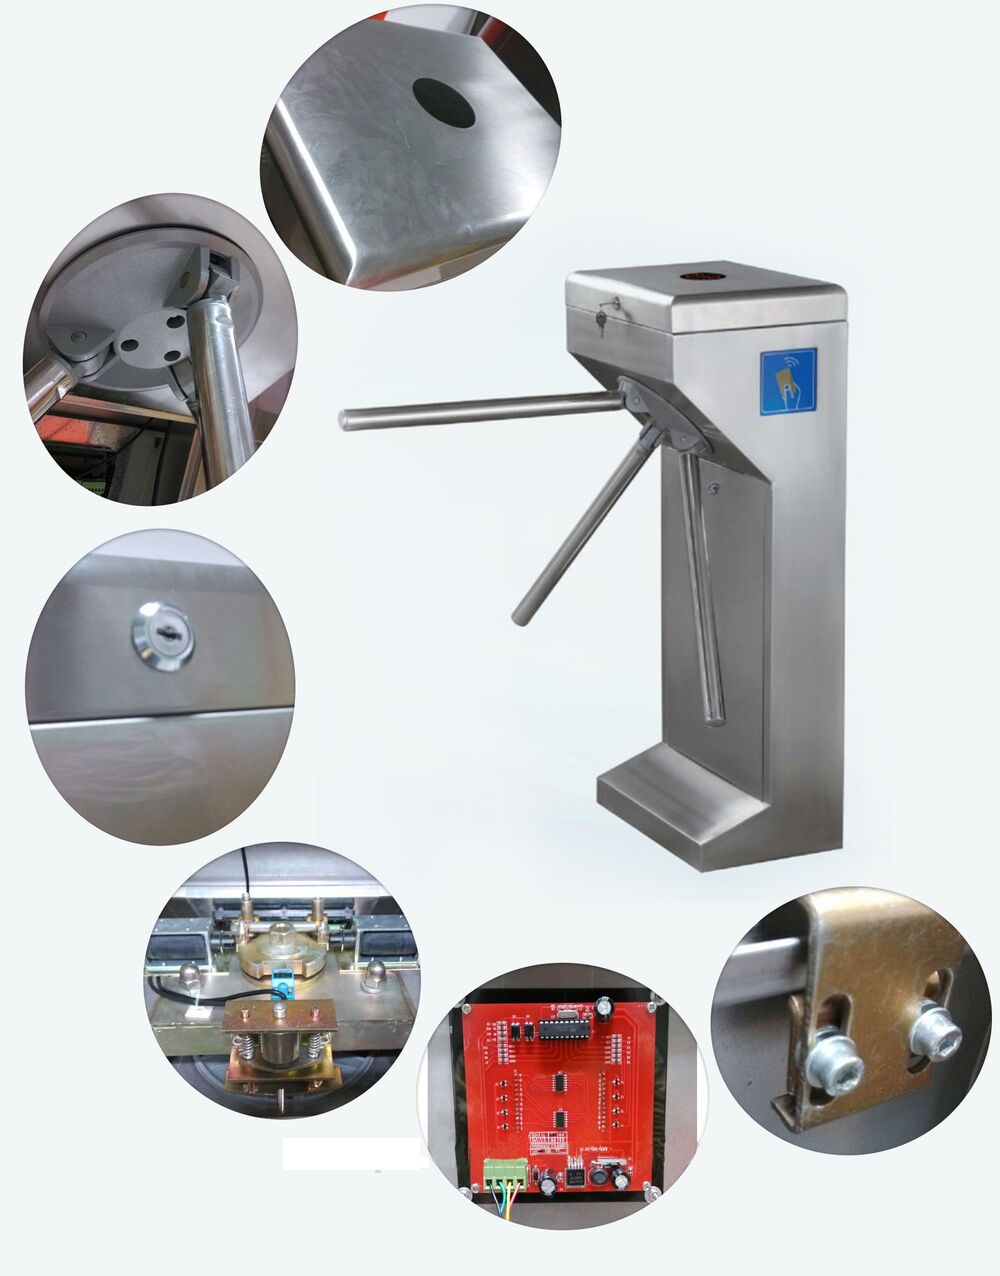 passenger channel automatic waterproof RFID access control tripod turnstiles gate